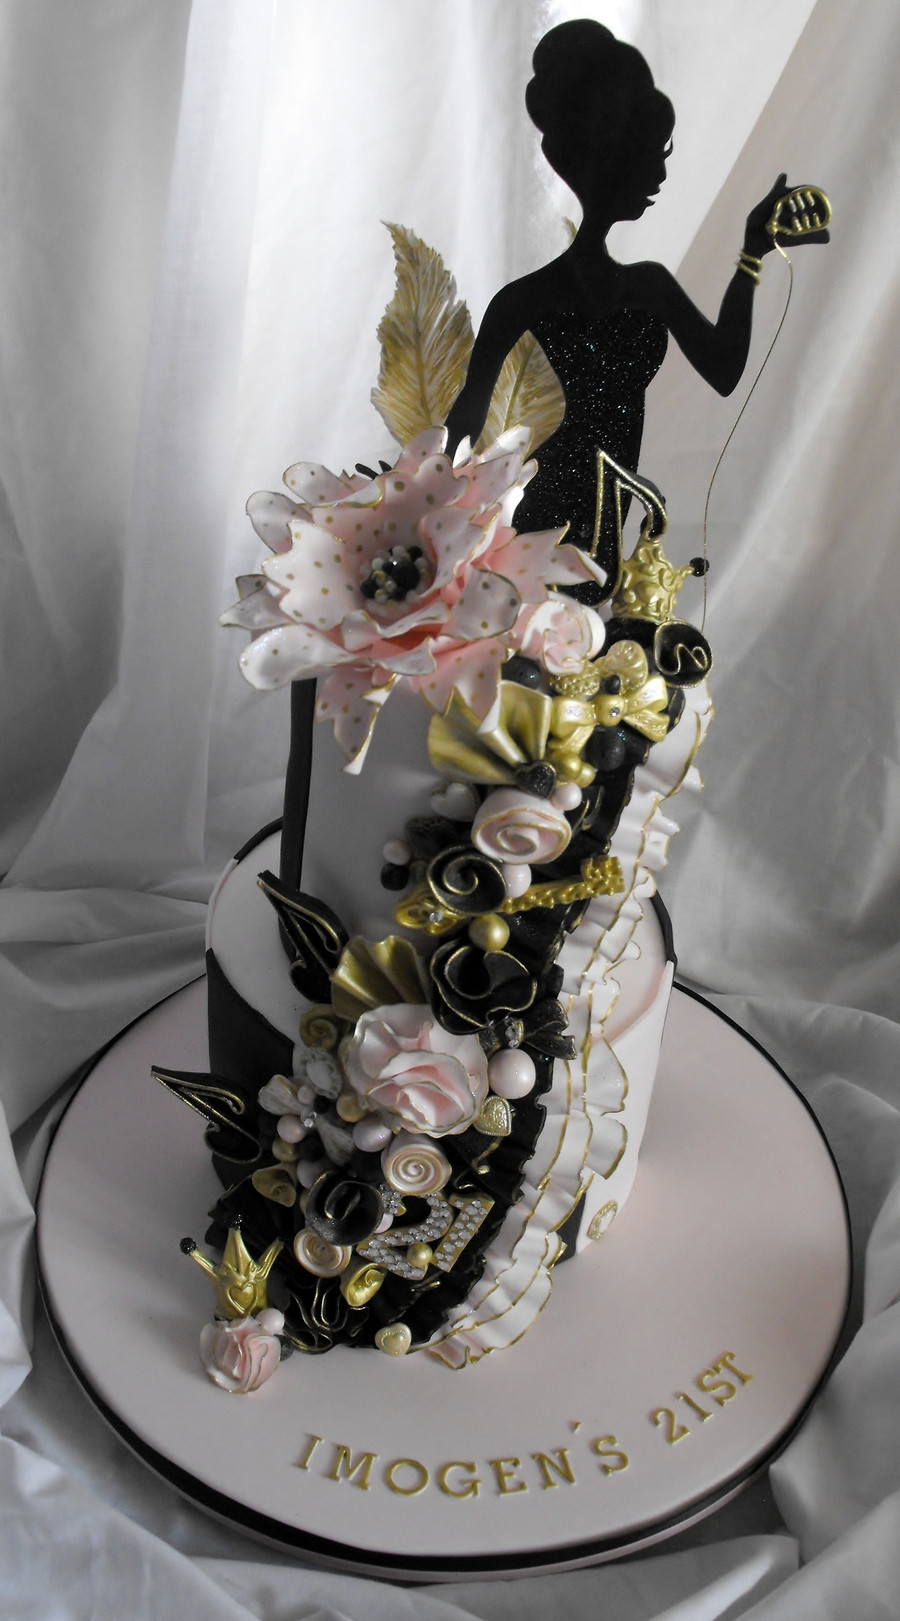 Best ideas about 21st Birthday Cake . Save or Pin 2 Tier Pink Black And Gold 21St Birthday Cake Now.